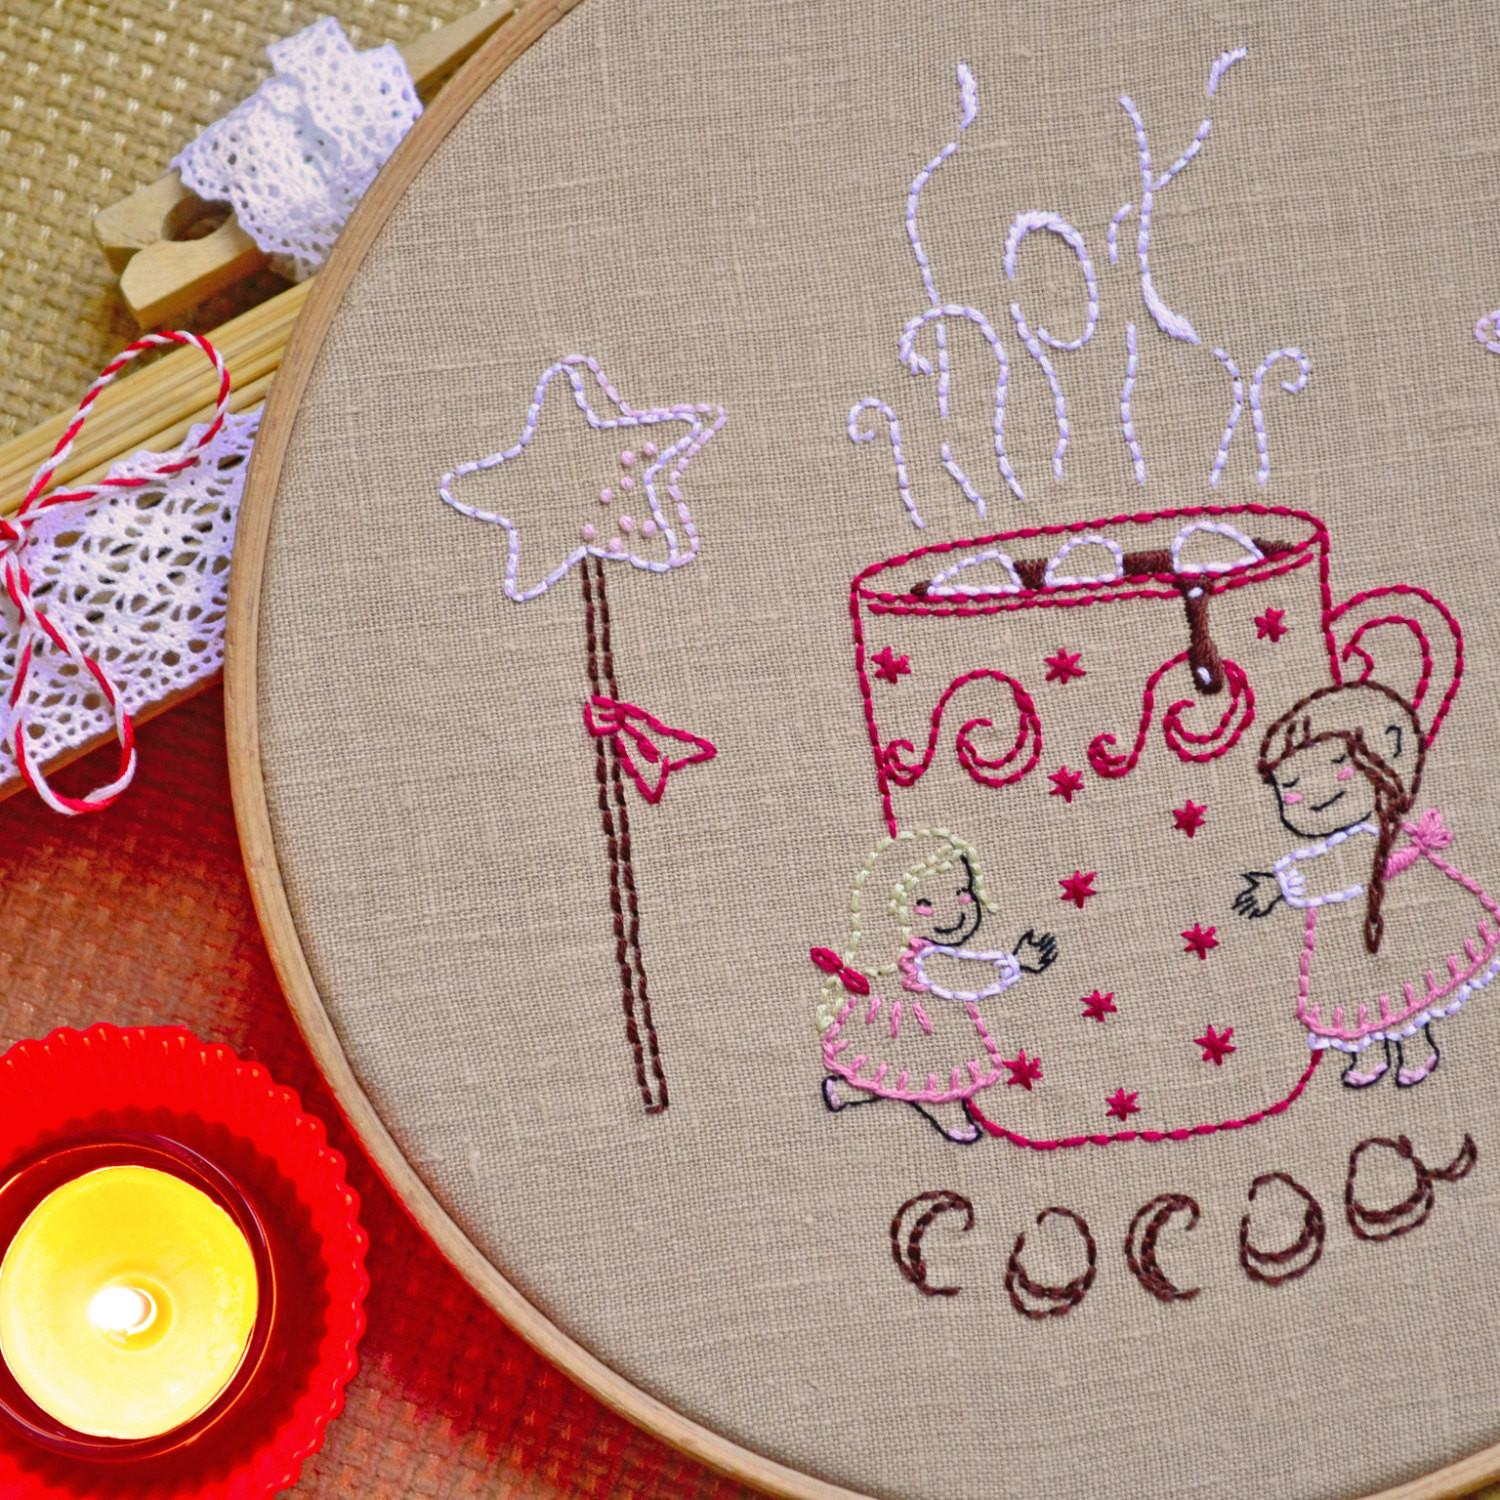 Hygge Diy Christmas Gifts Hand Embroidery Patterns